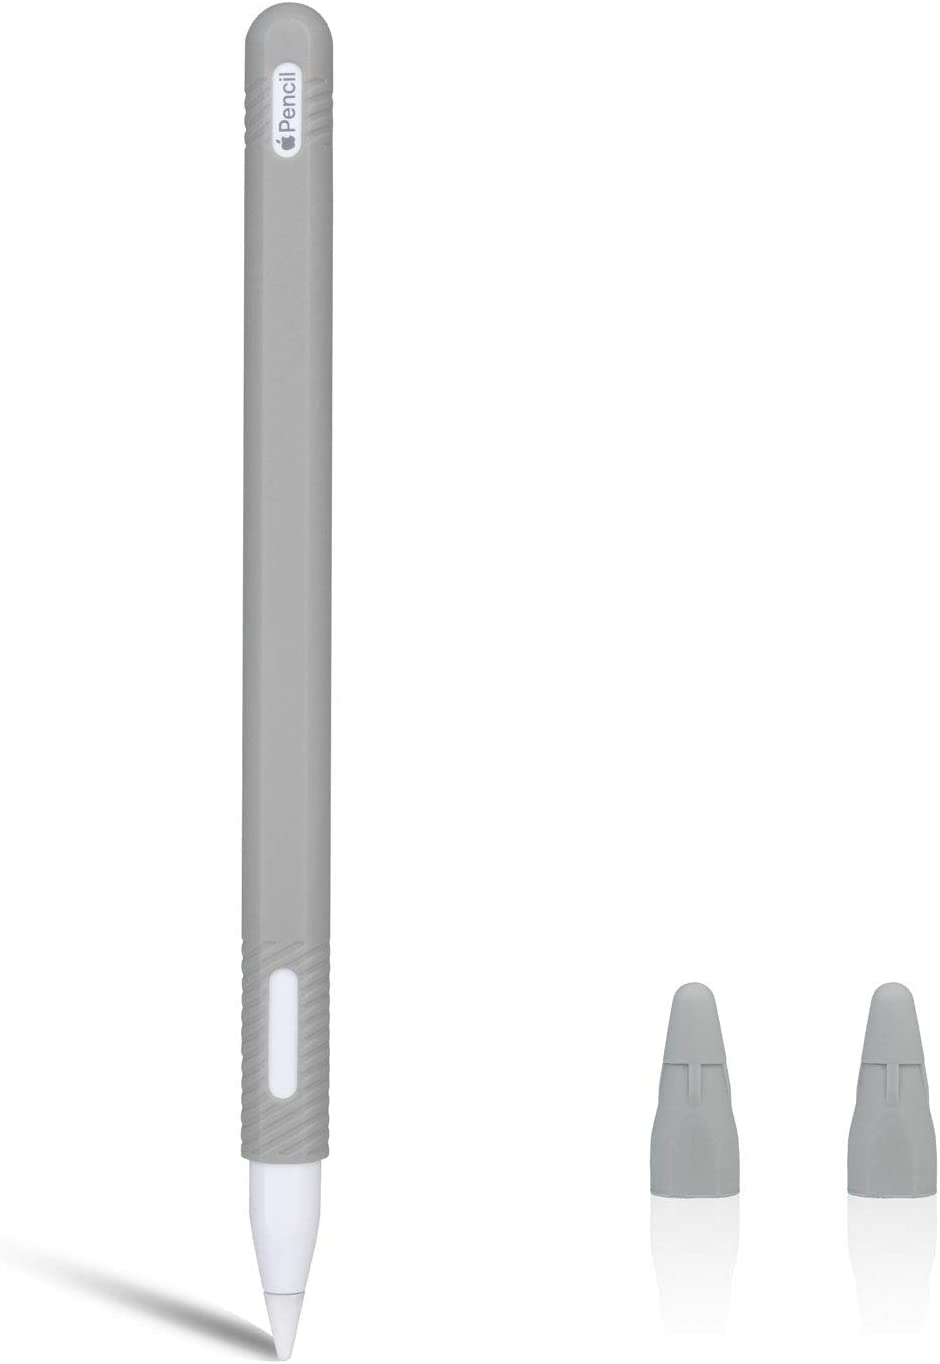 gozahad Silicone Case Compatible with New Apple Pencil 2nd Generation, Protective Anti-Slip Grip Sleeve with Nib Cover (2 Pieces), Do not Affect for Pencil Mode Switch & Magnetci (Grey)